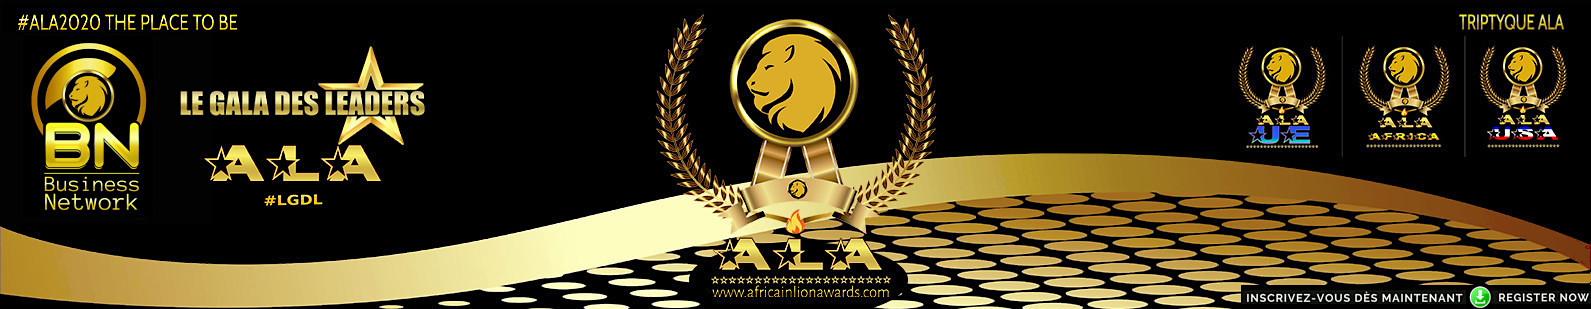 AFRICAIN LION AWARDS.COM